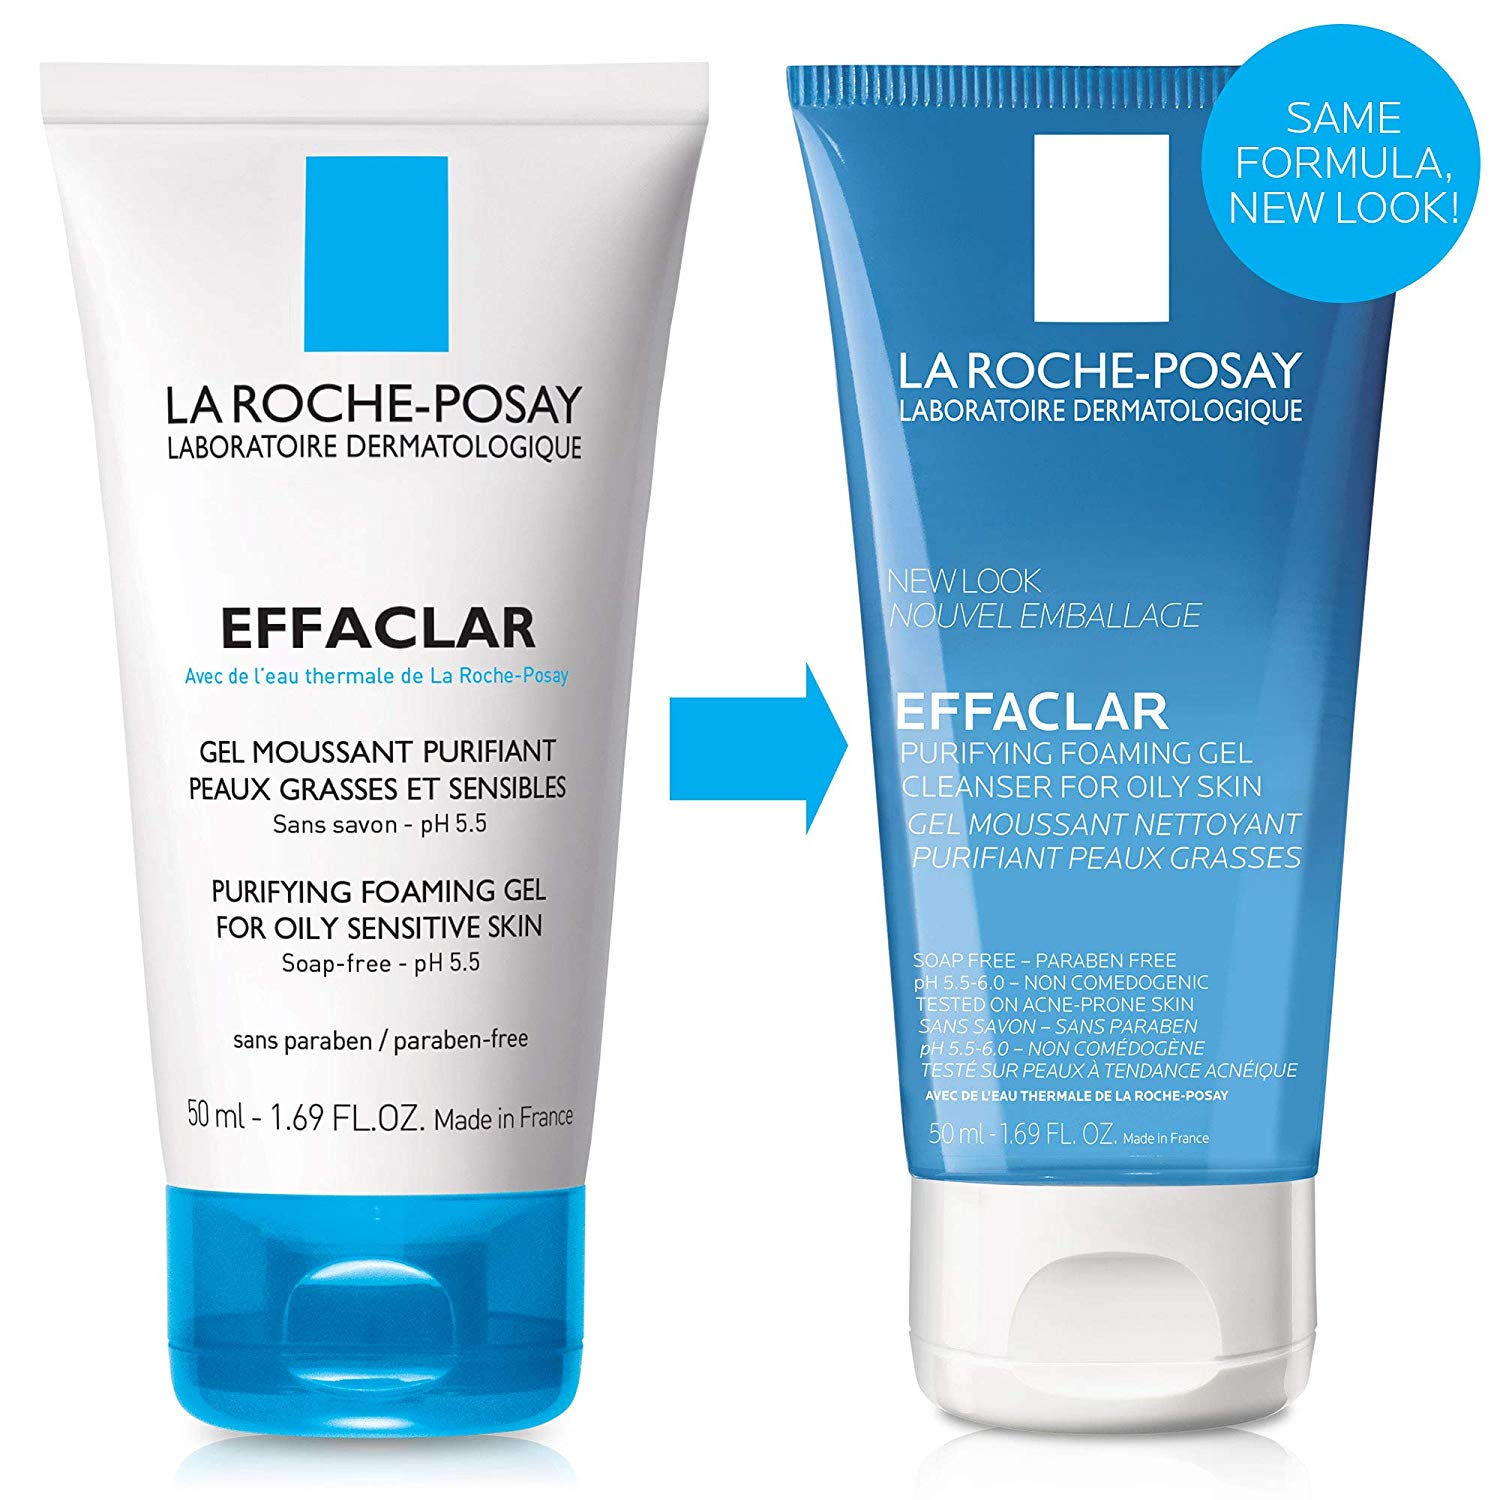 La Roche-Posay Effaclar Purifying Foaming Face Wash Gel Cleanser